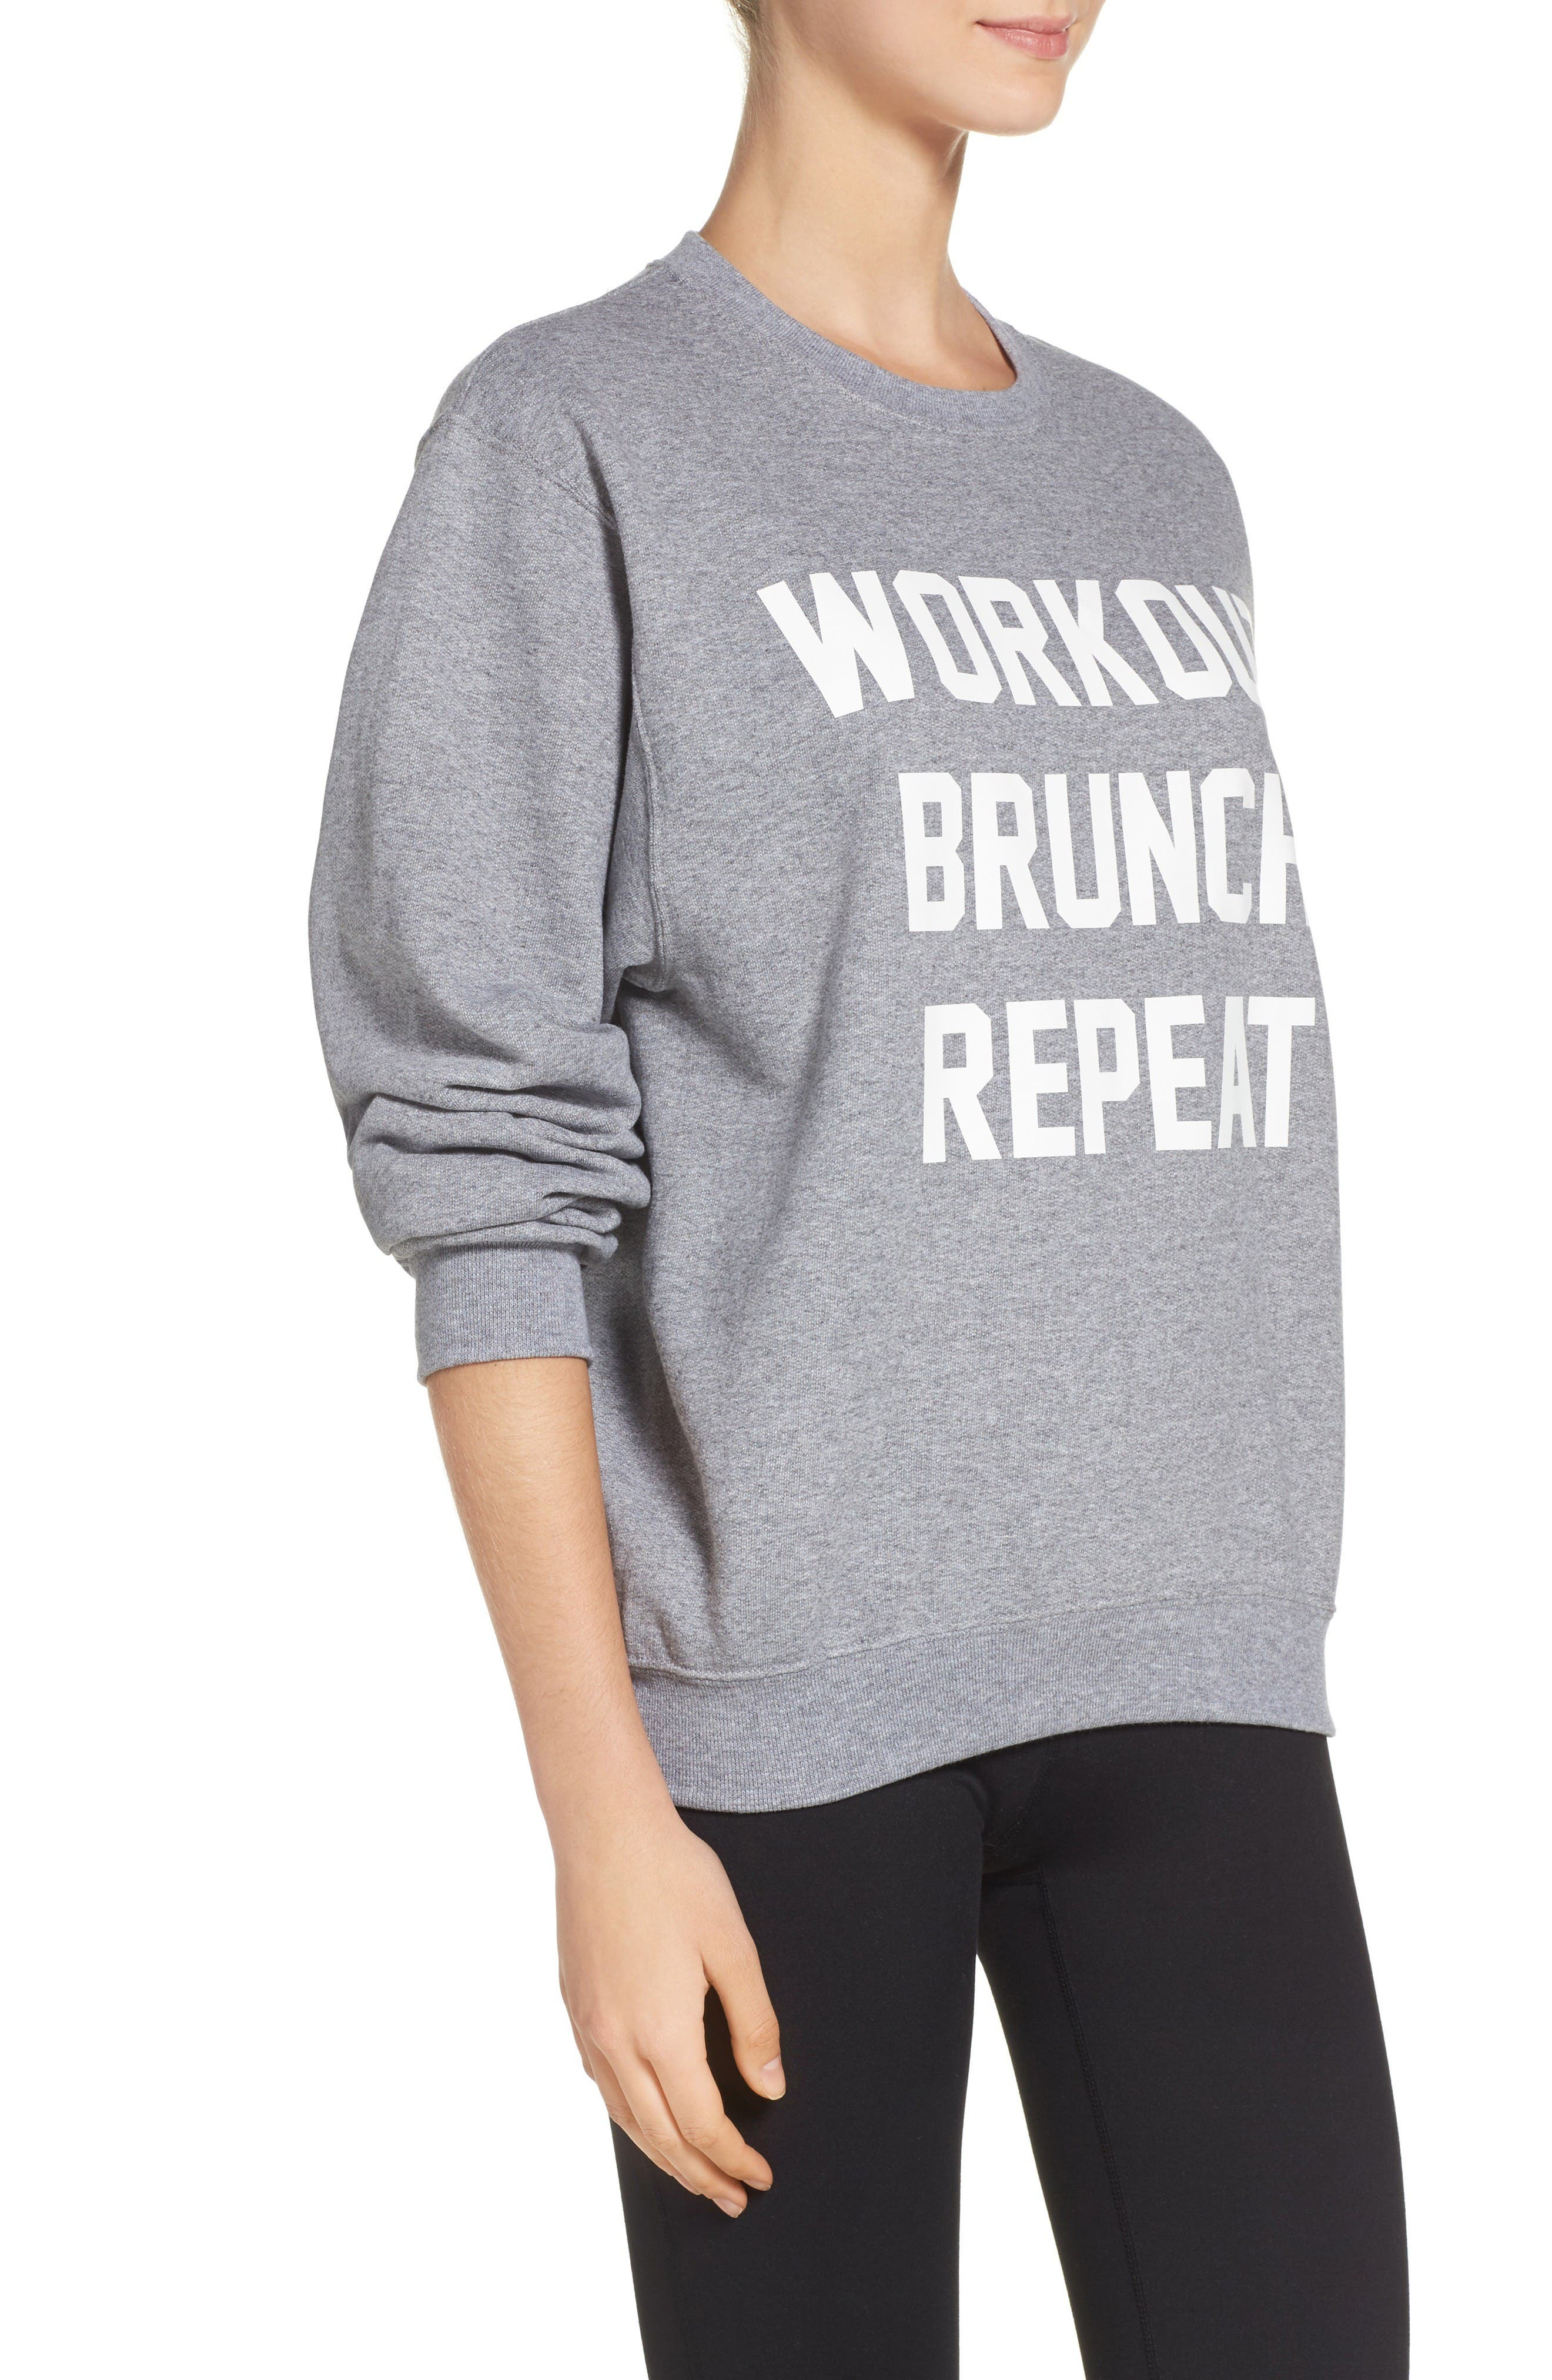 Alternate Image 3  - Private Party Workout Brunch Repeat Sweatshirt